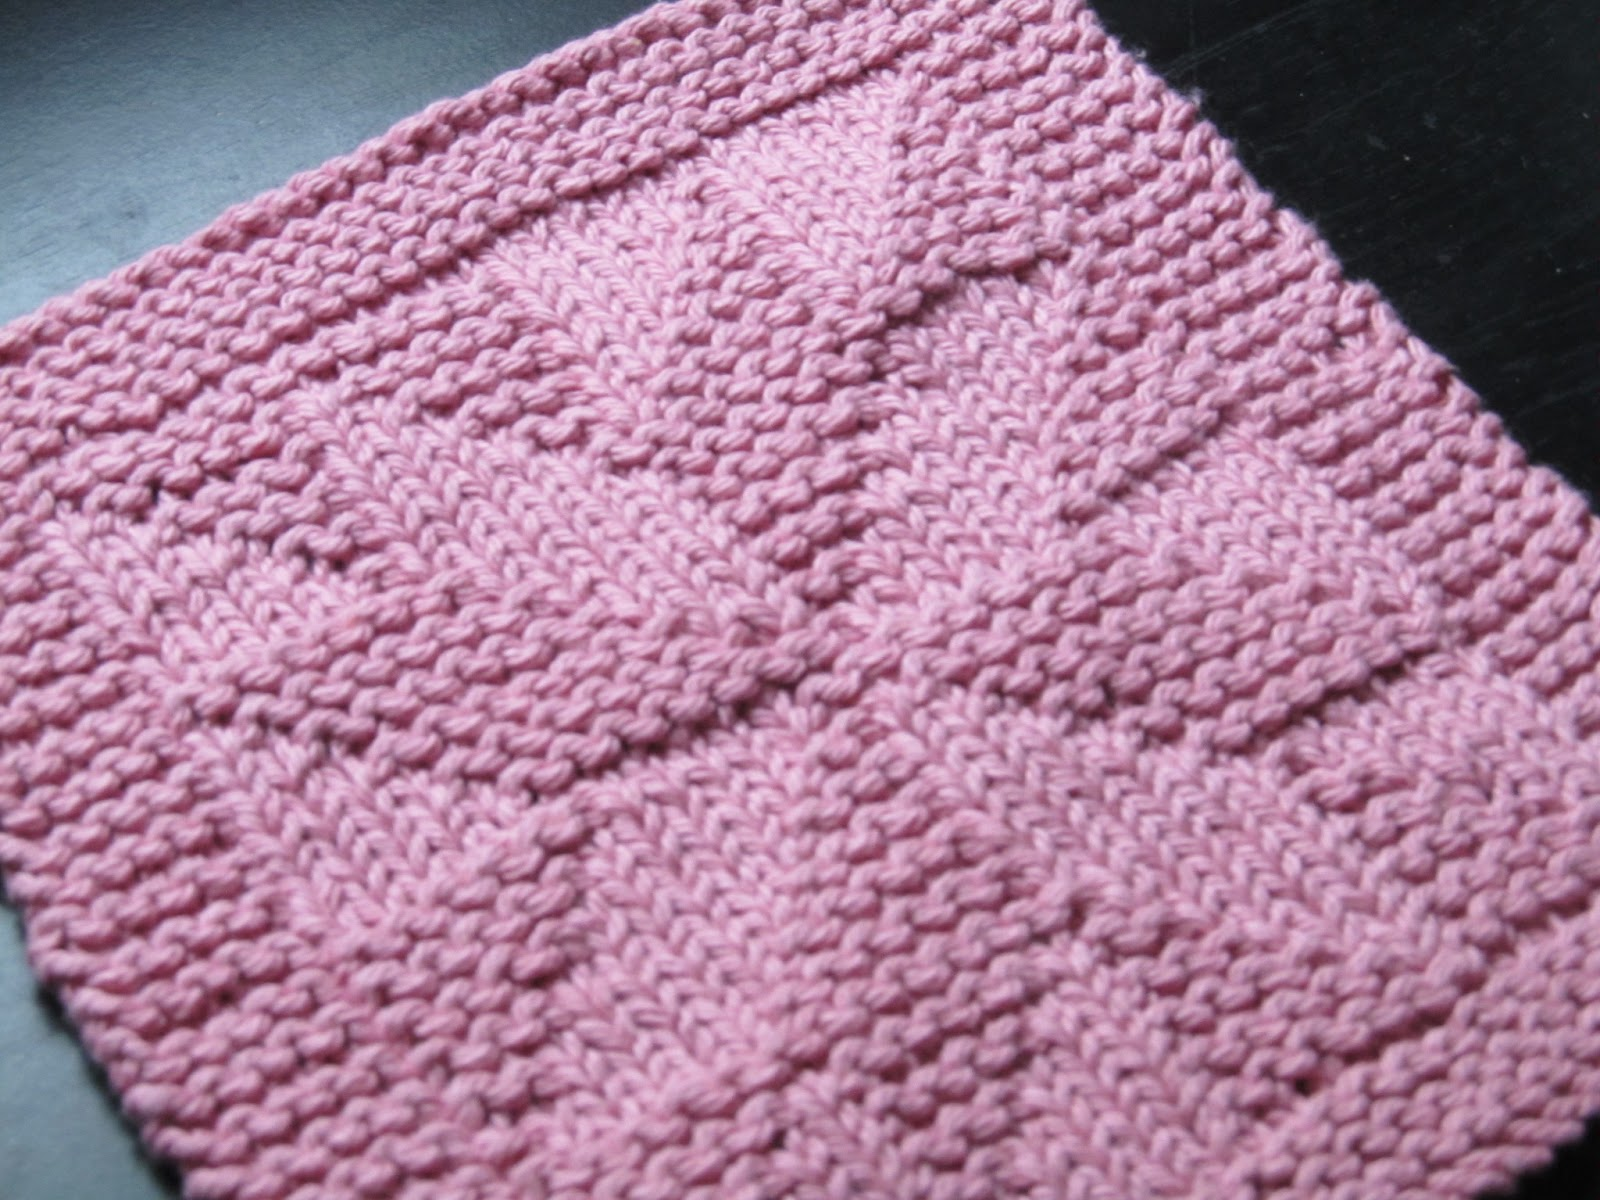 Knitting Pictures Free : Knitted dishcloth patterns bing images